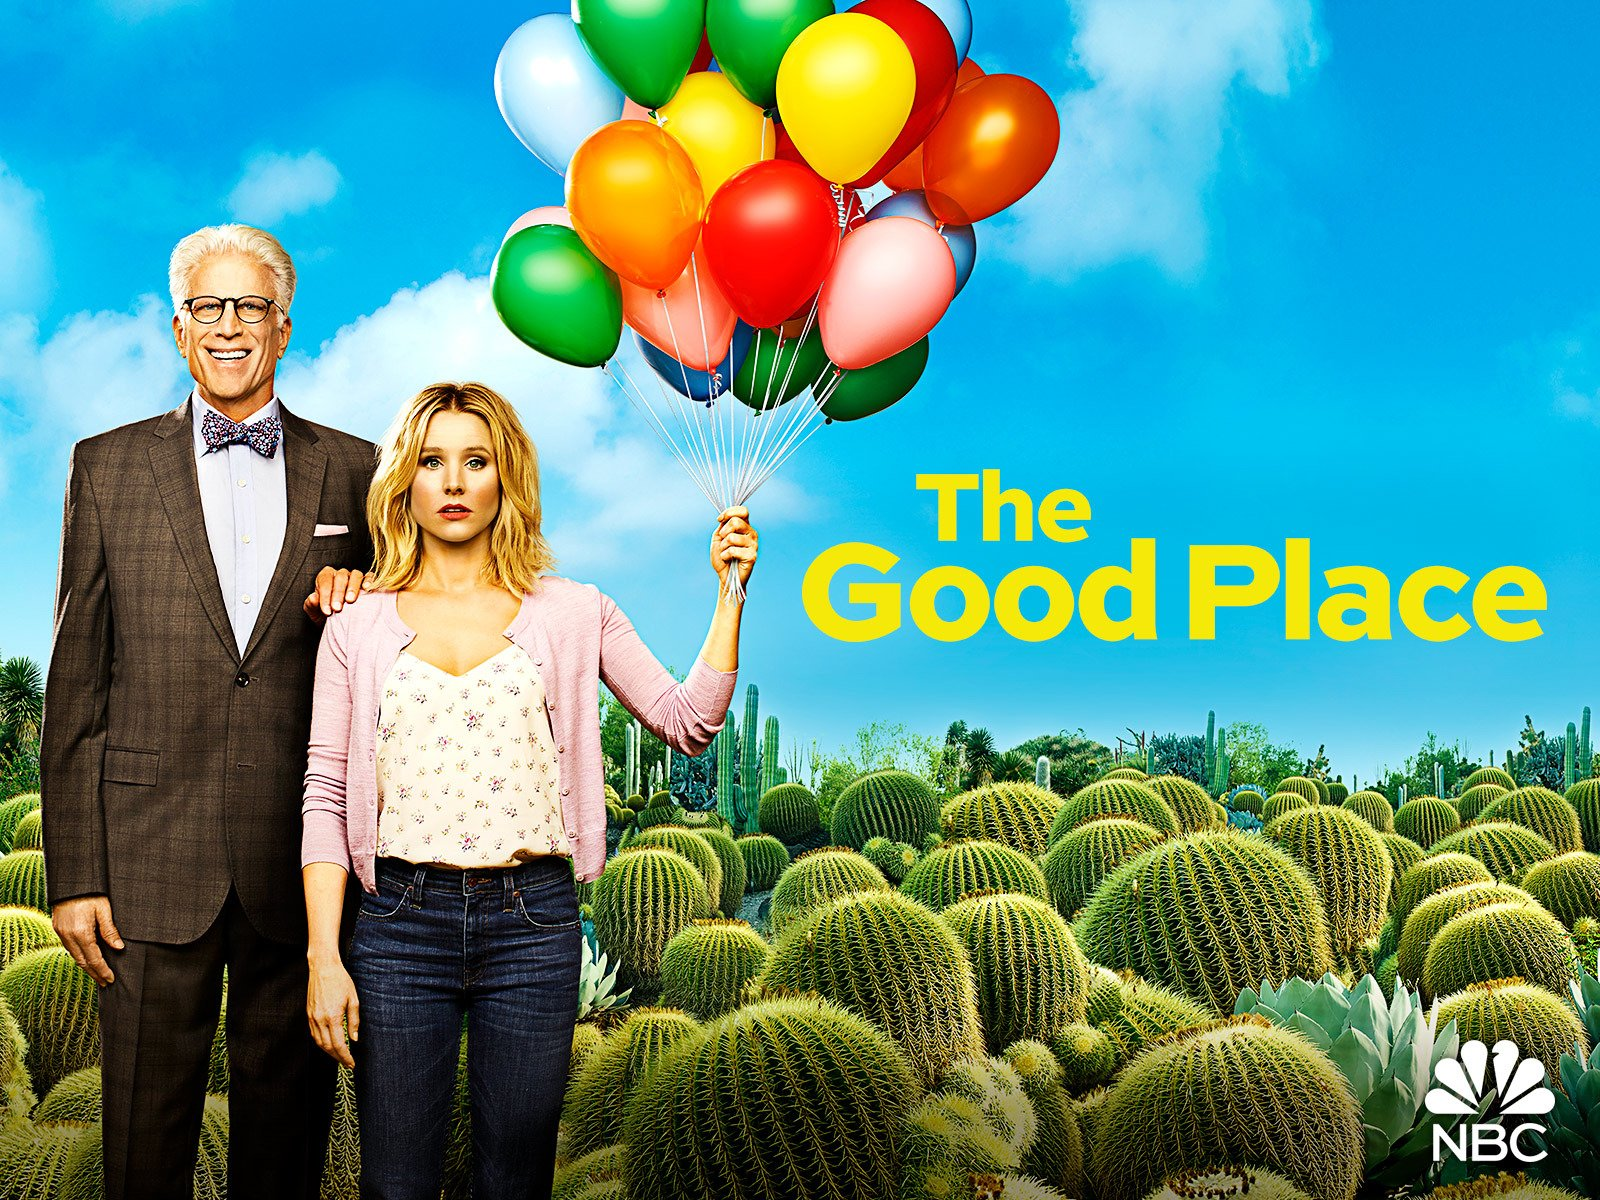 the good place s02e04 download